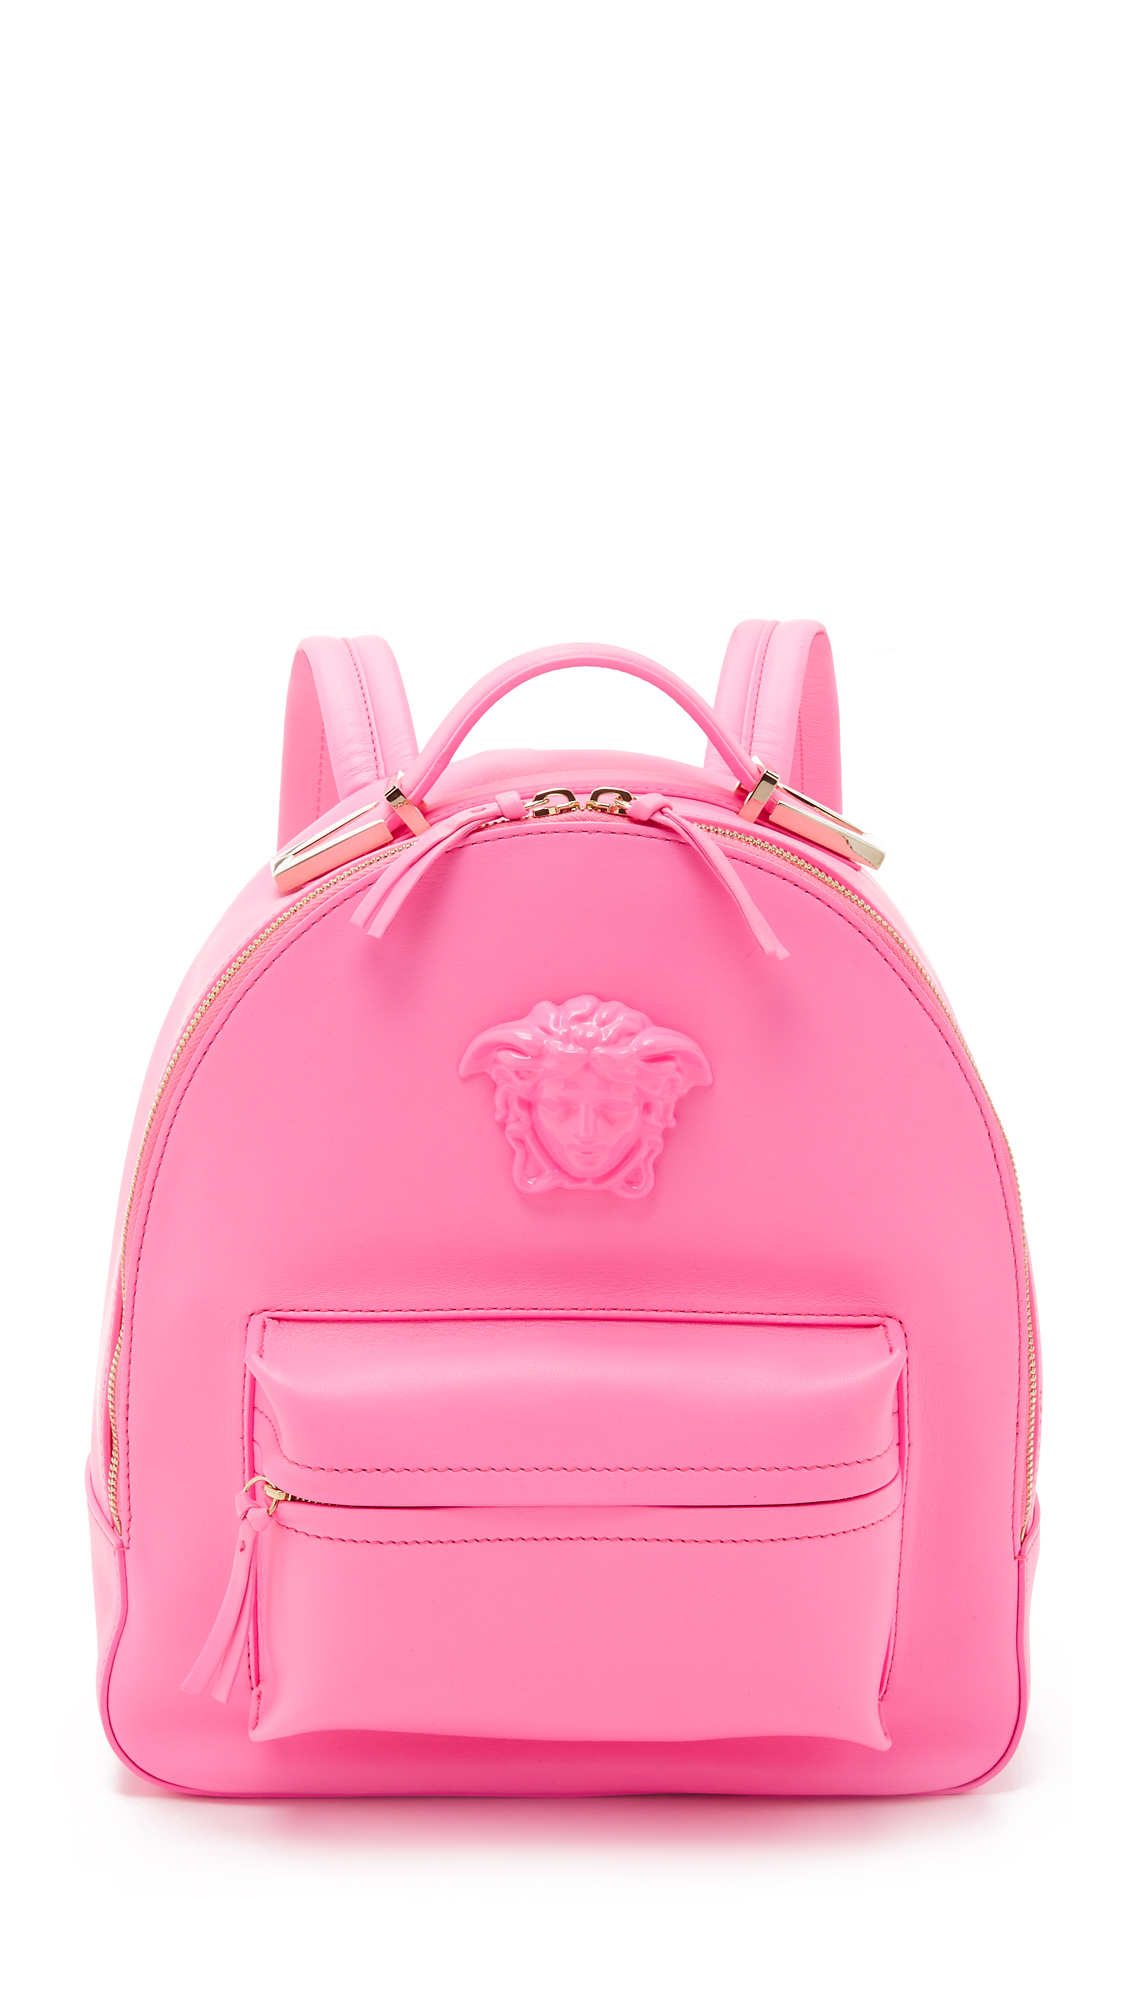 c698784d4c6e Versace Leather Backpack